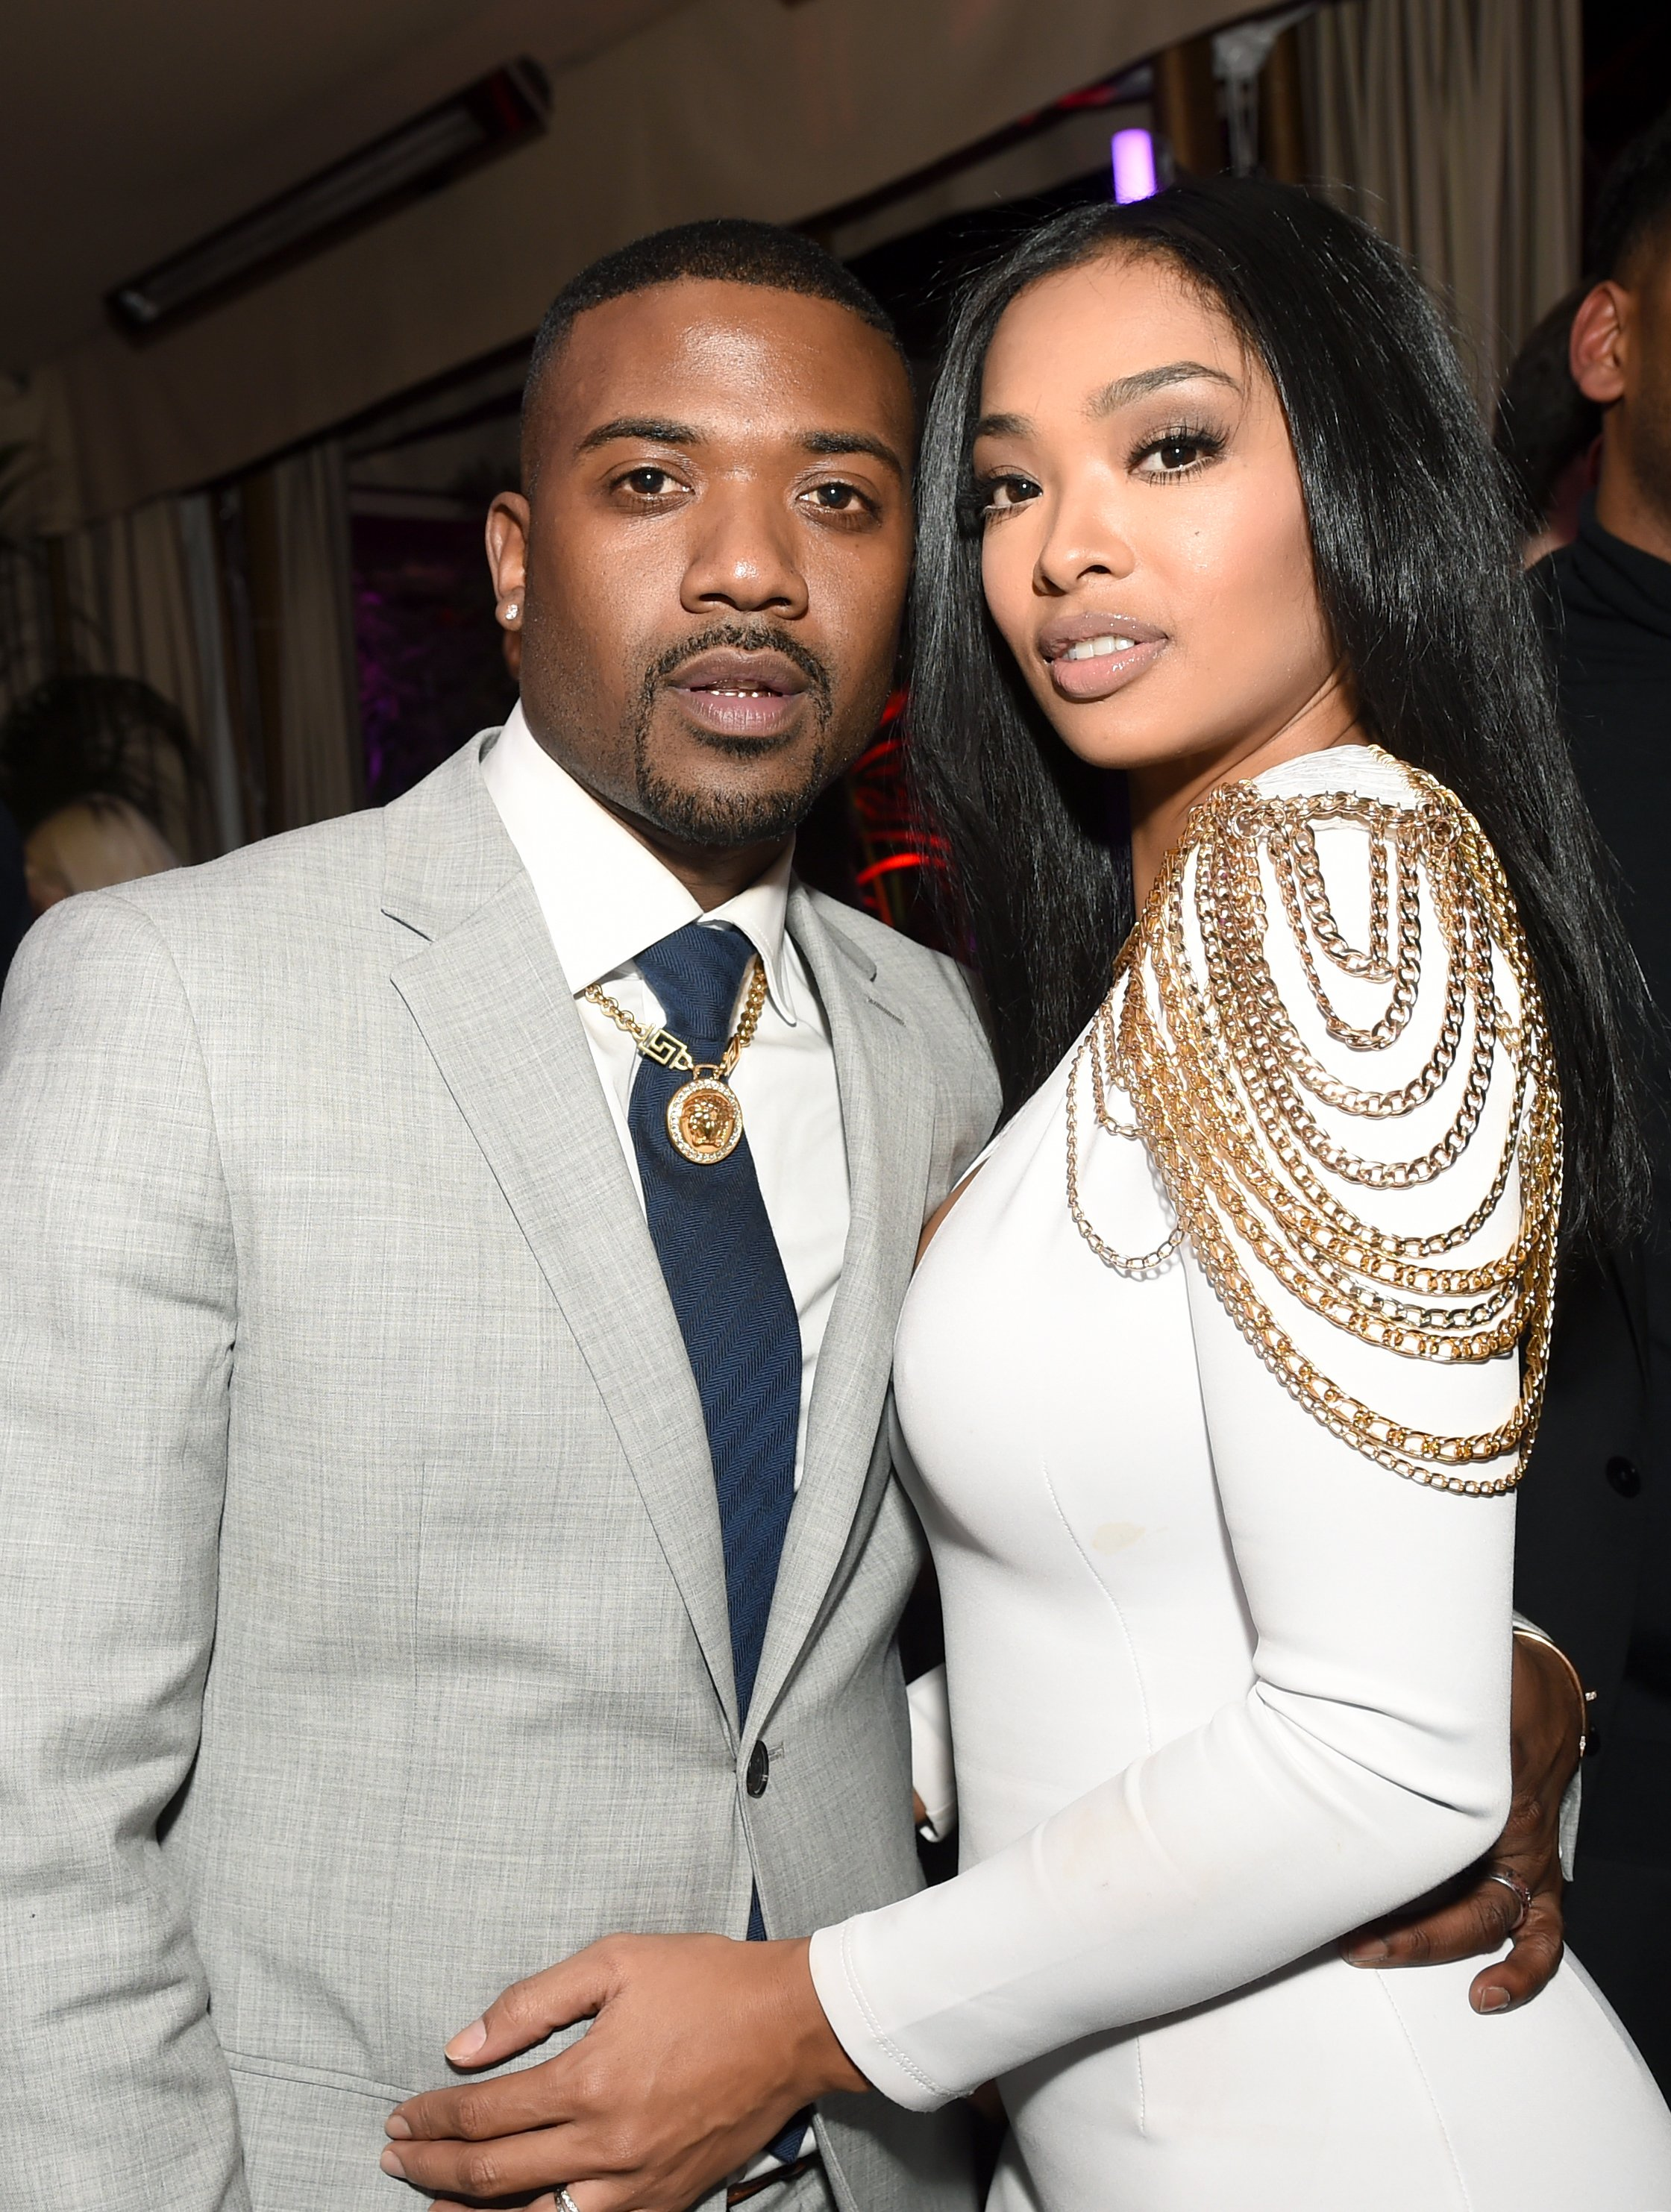 Ray J and wife Princess Love attending a Grammys event in February 2017. | Photo: Getty Images